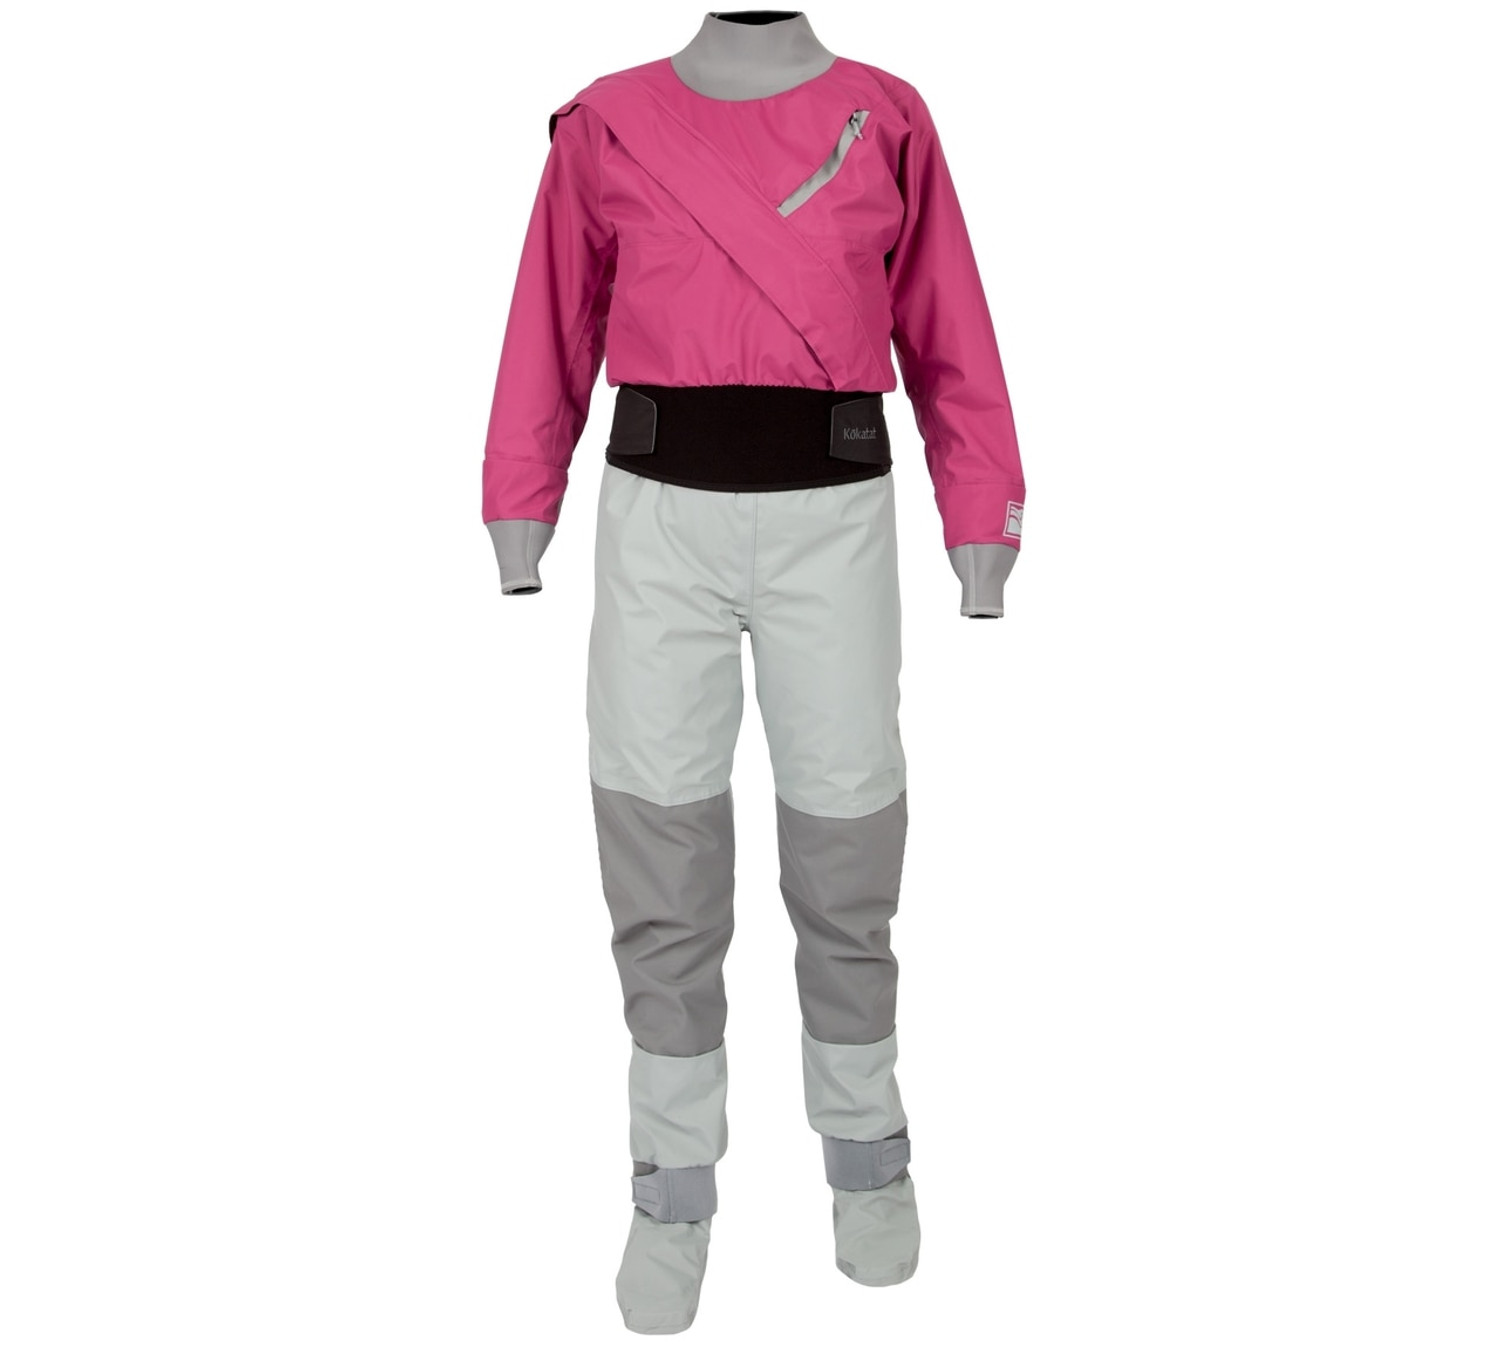 Women's Meridian Hydrus 3.0 Dry Suit w/Dropseat - Berry - Front   Western Canoeing & Kayaking